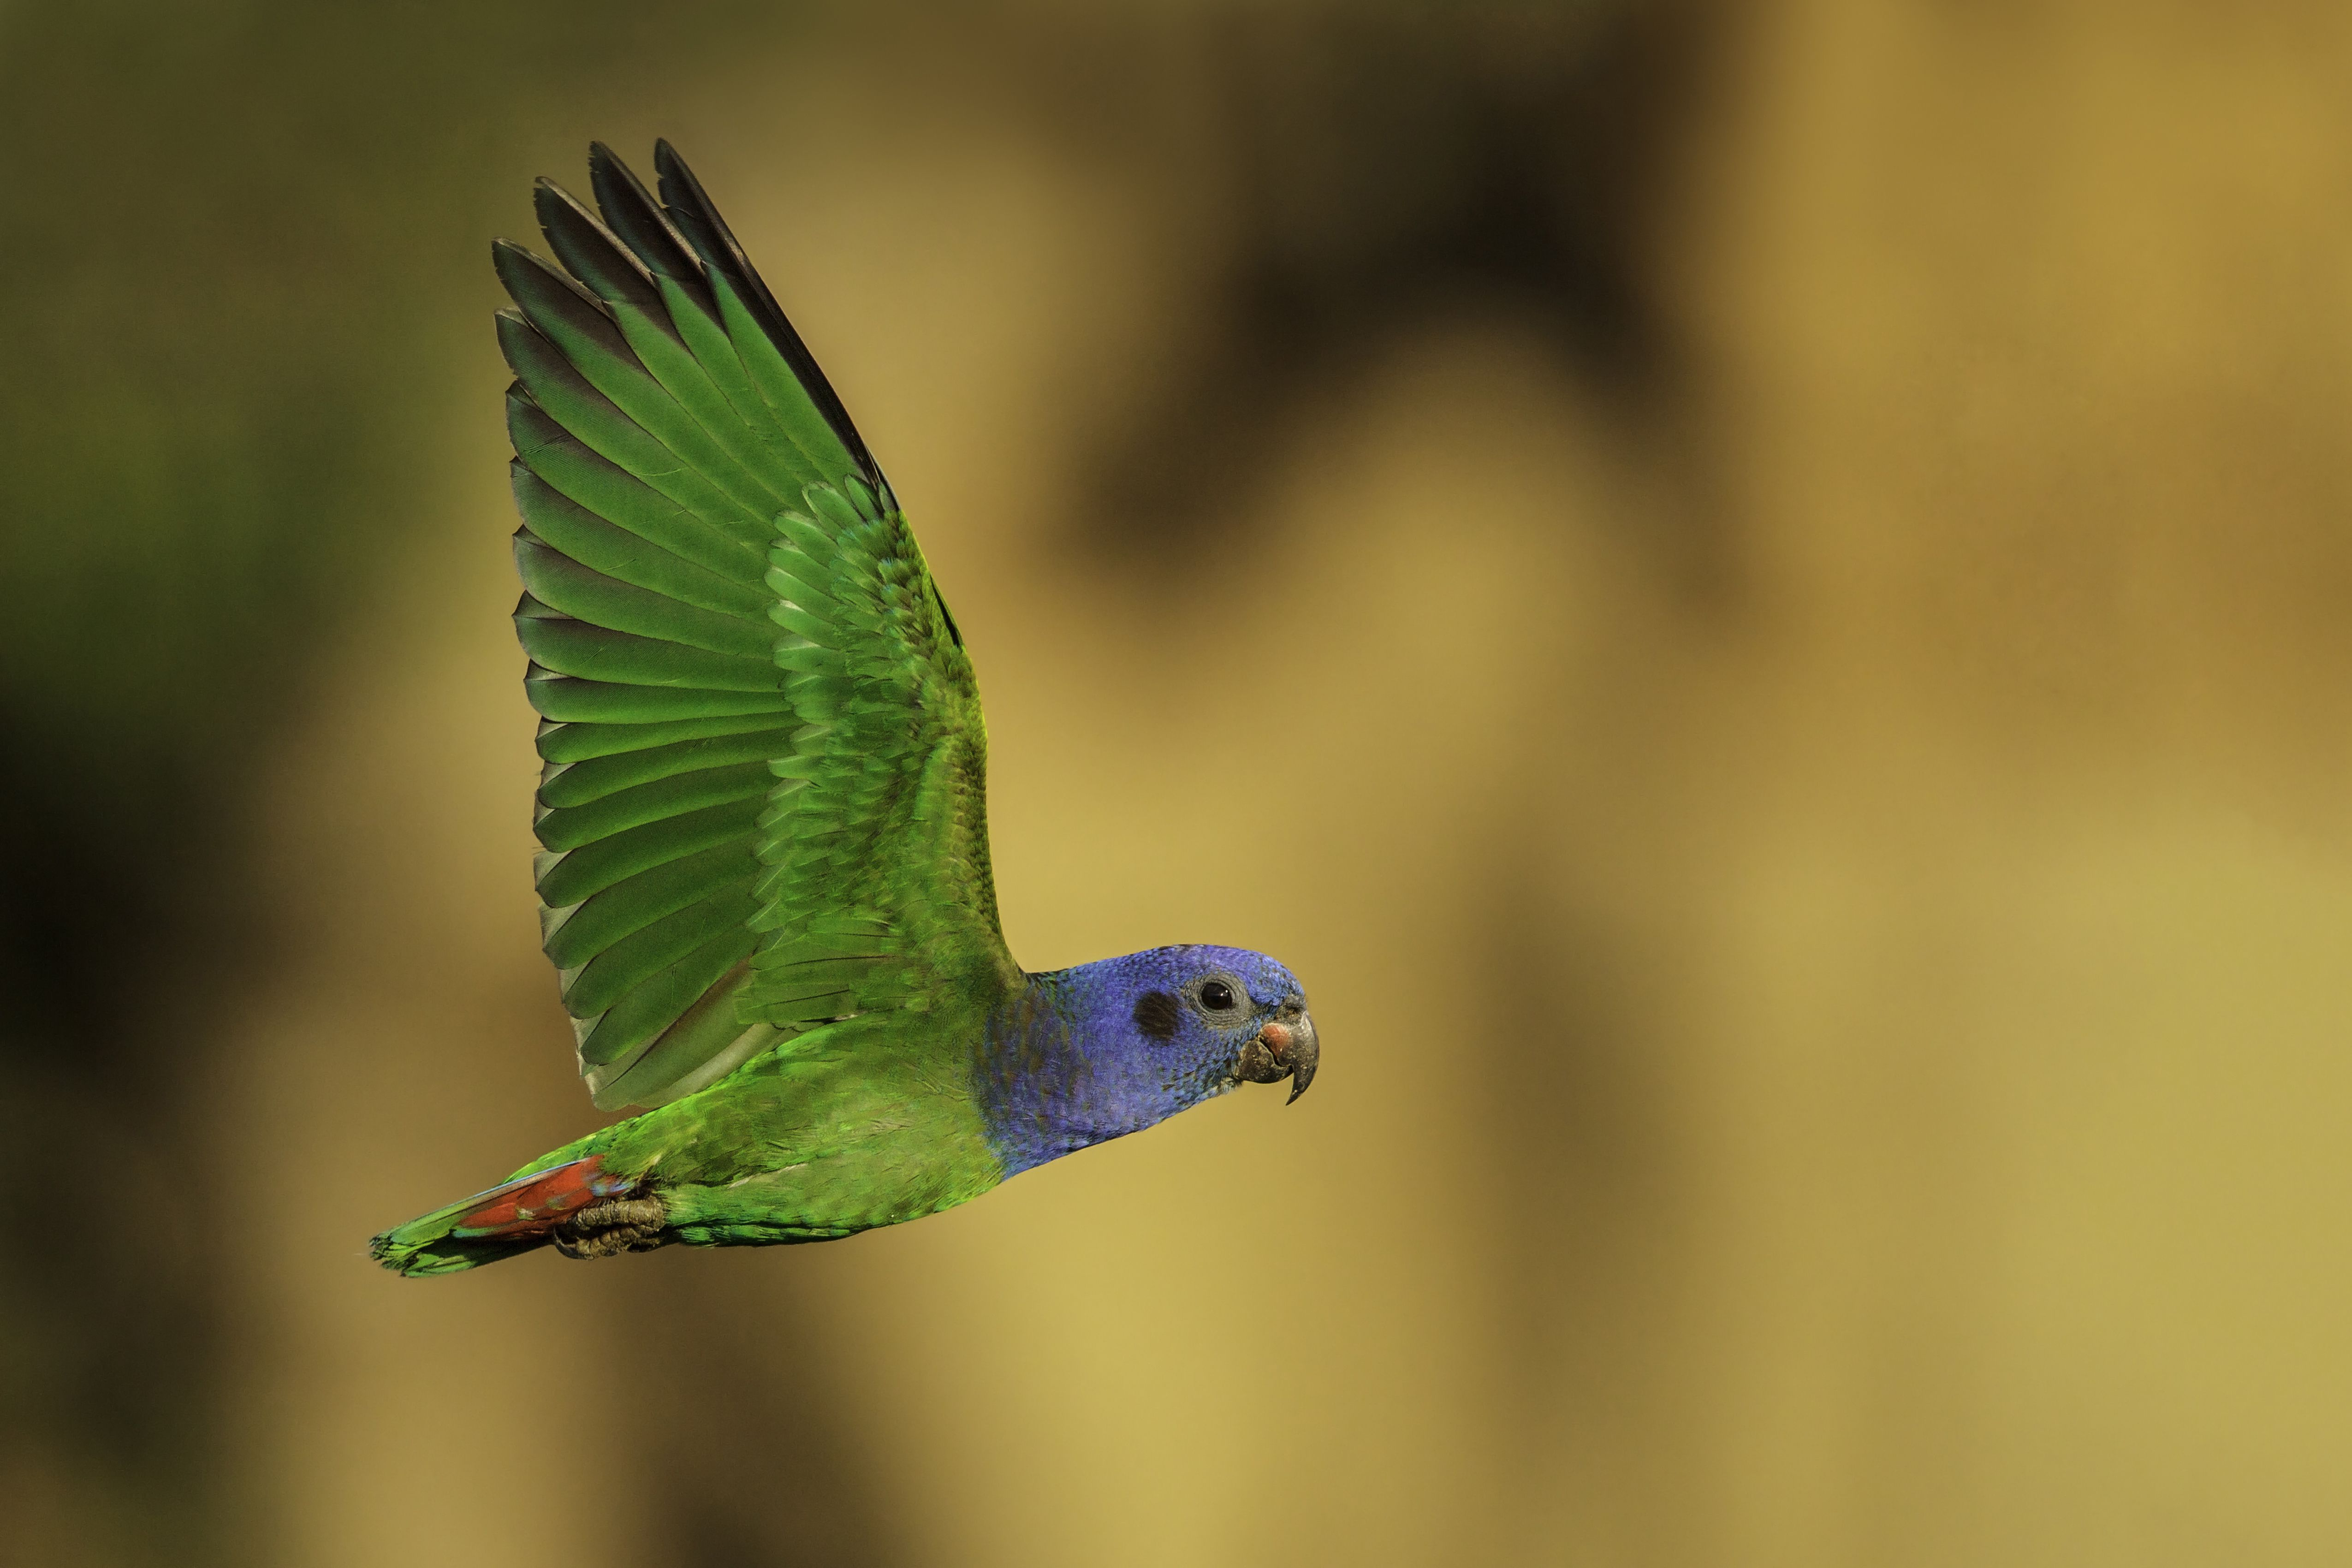 Blue-headed pionus parrot flying